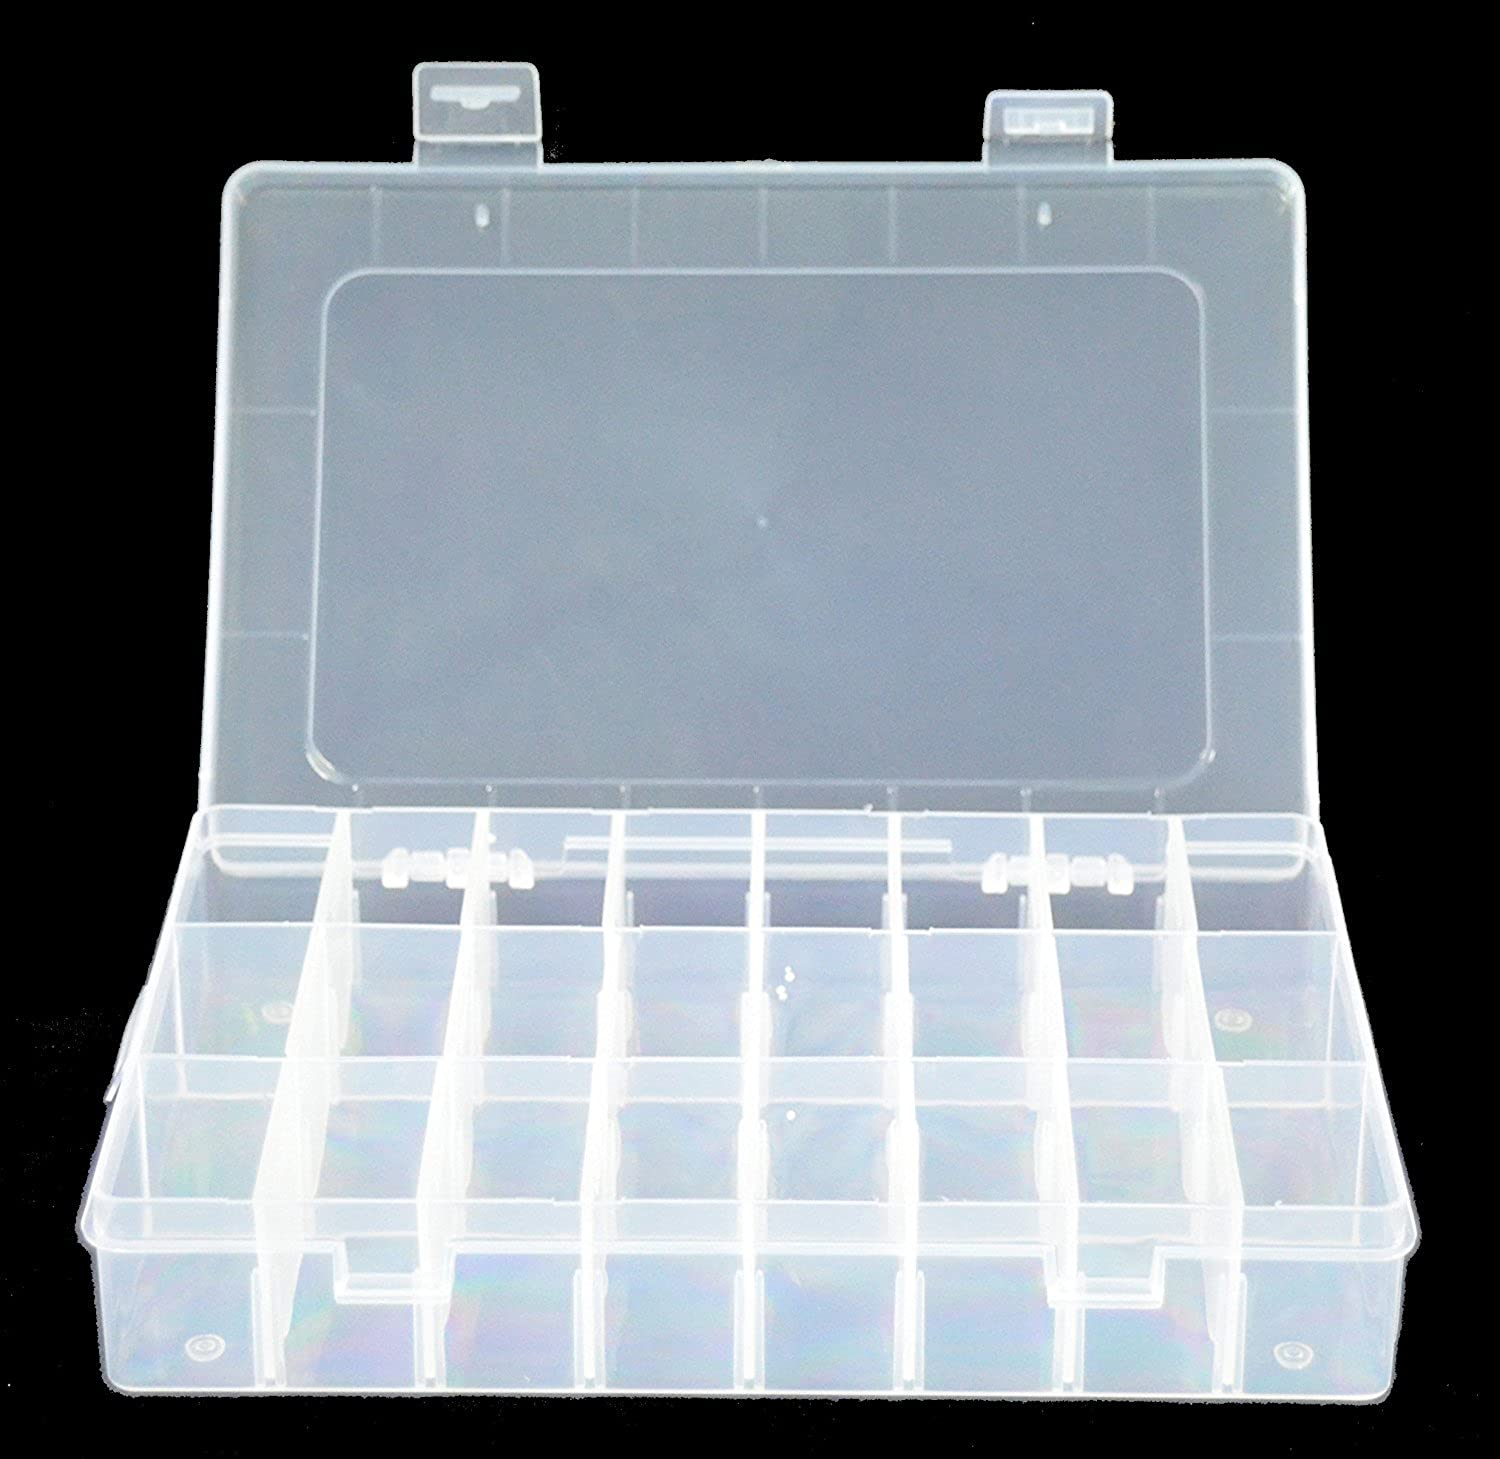 DierCosy Grid Clear Adjustable Jewelry Bead Organizer Box Storage Container Case (24 Grid) DCpro00253